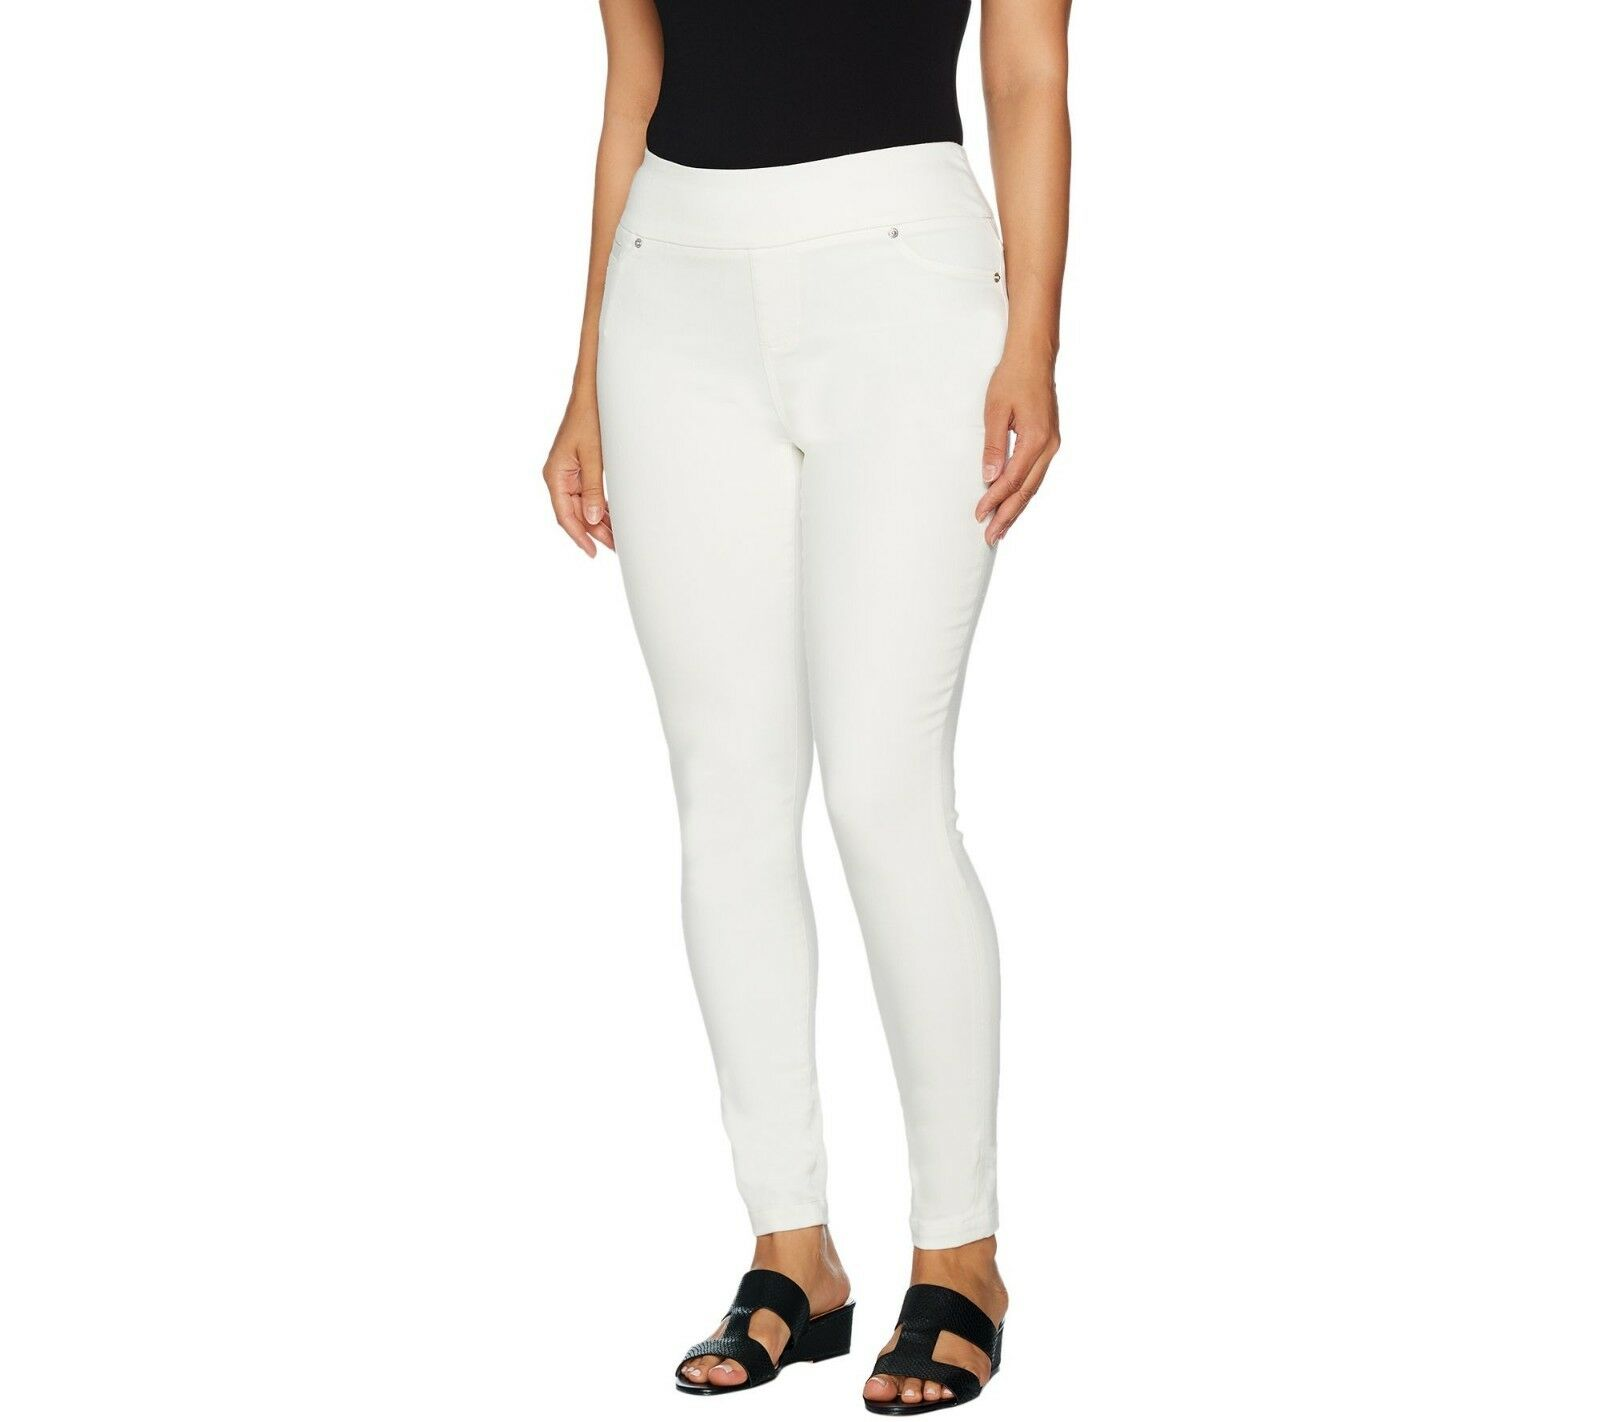 Lisa Rinna Collection Regular Pull-On Skinny Ankle Jeans White Small Size QVC